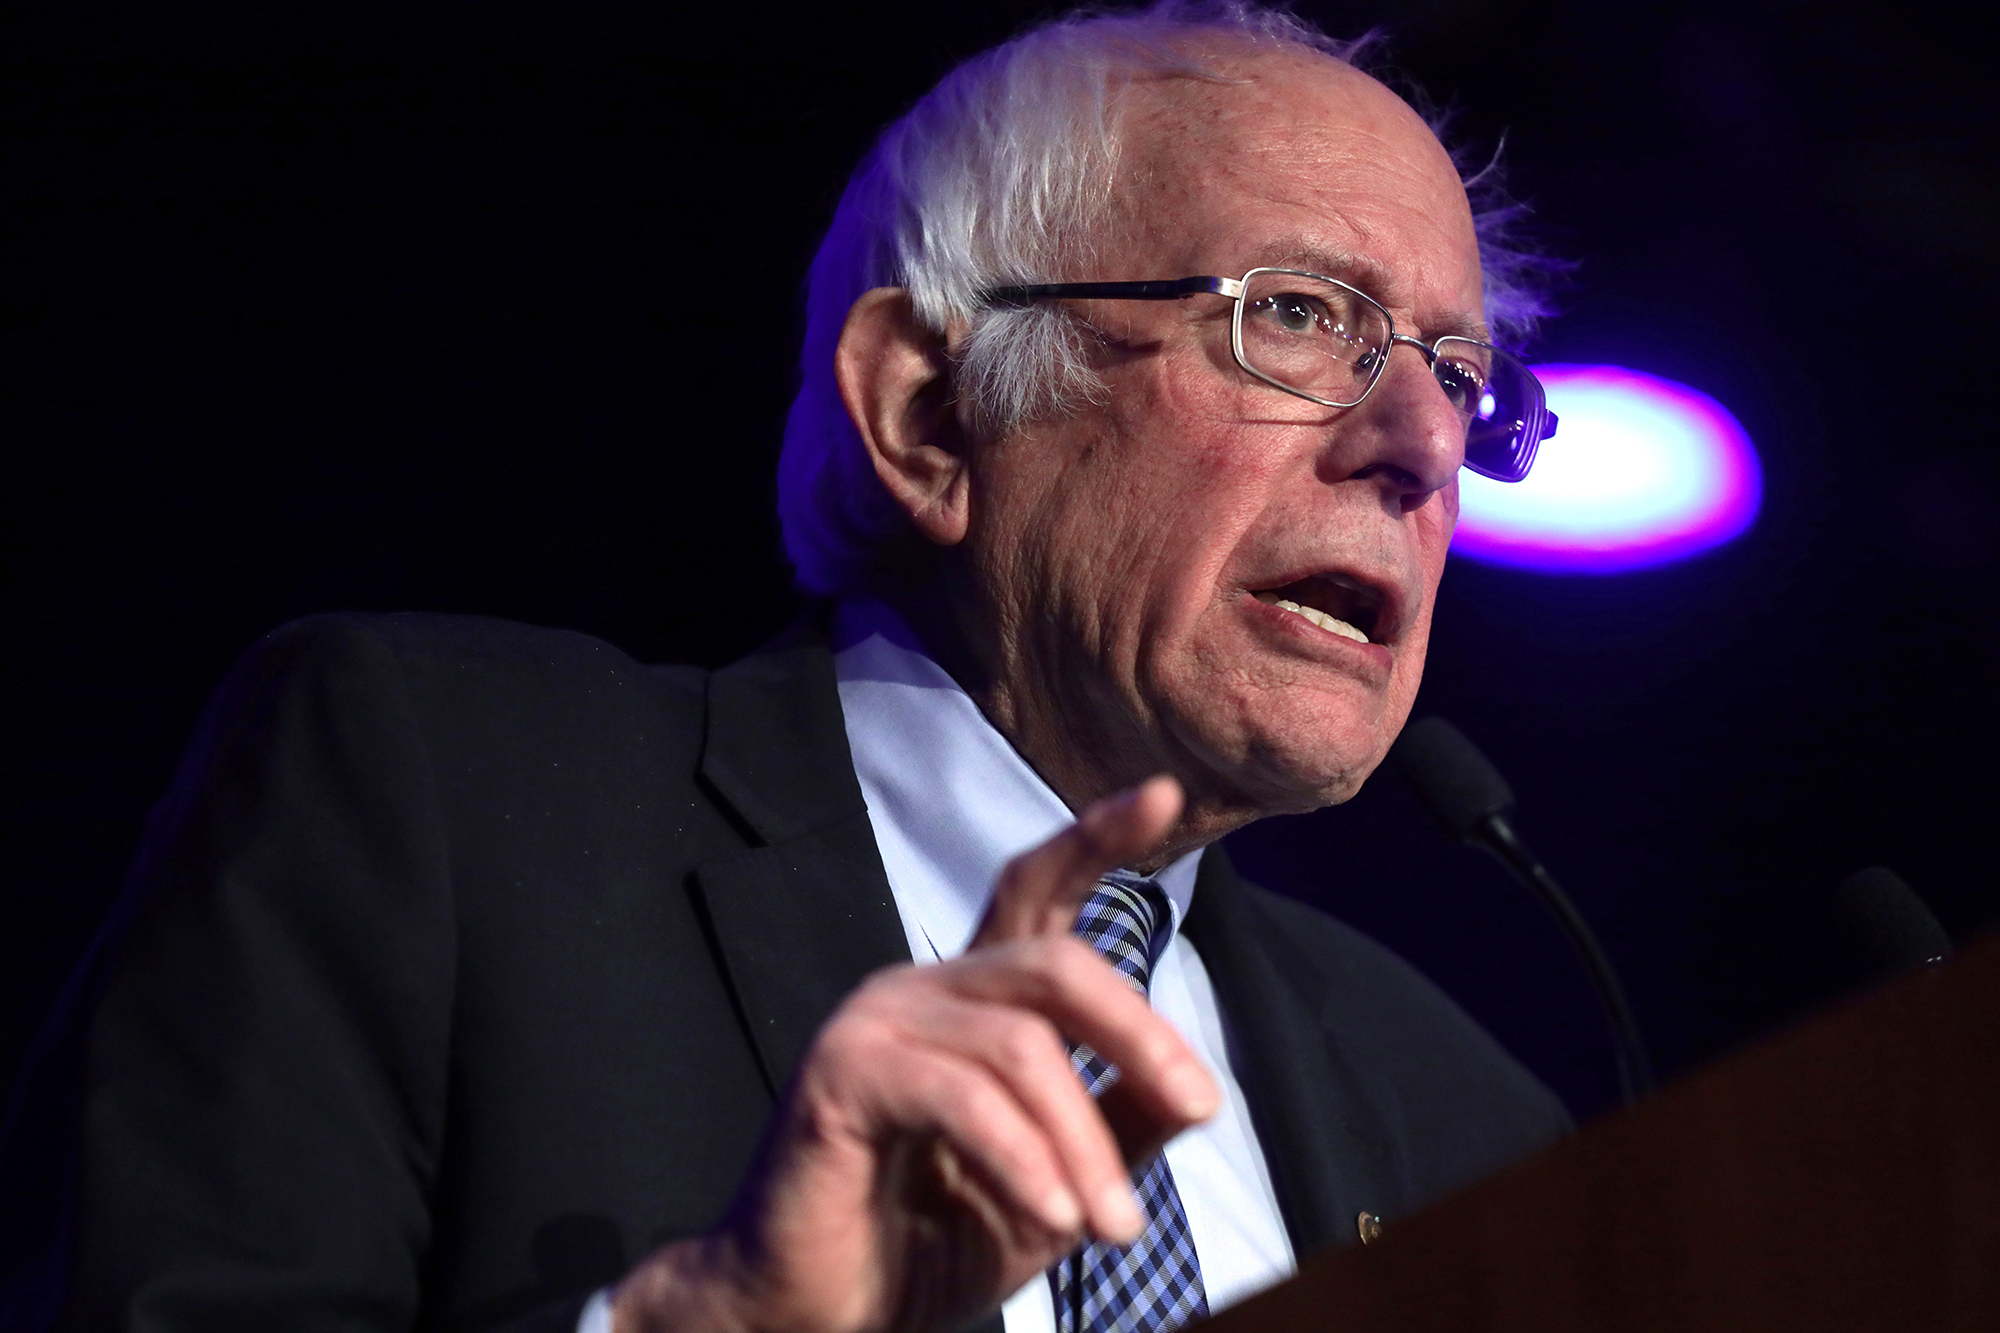 Sanders: 'I do not believe in online bullying. End of discussion'